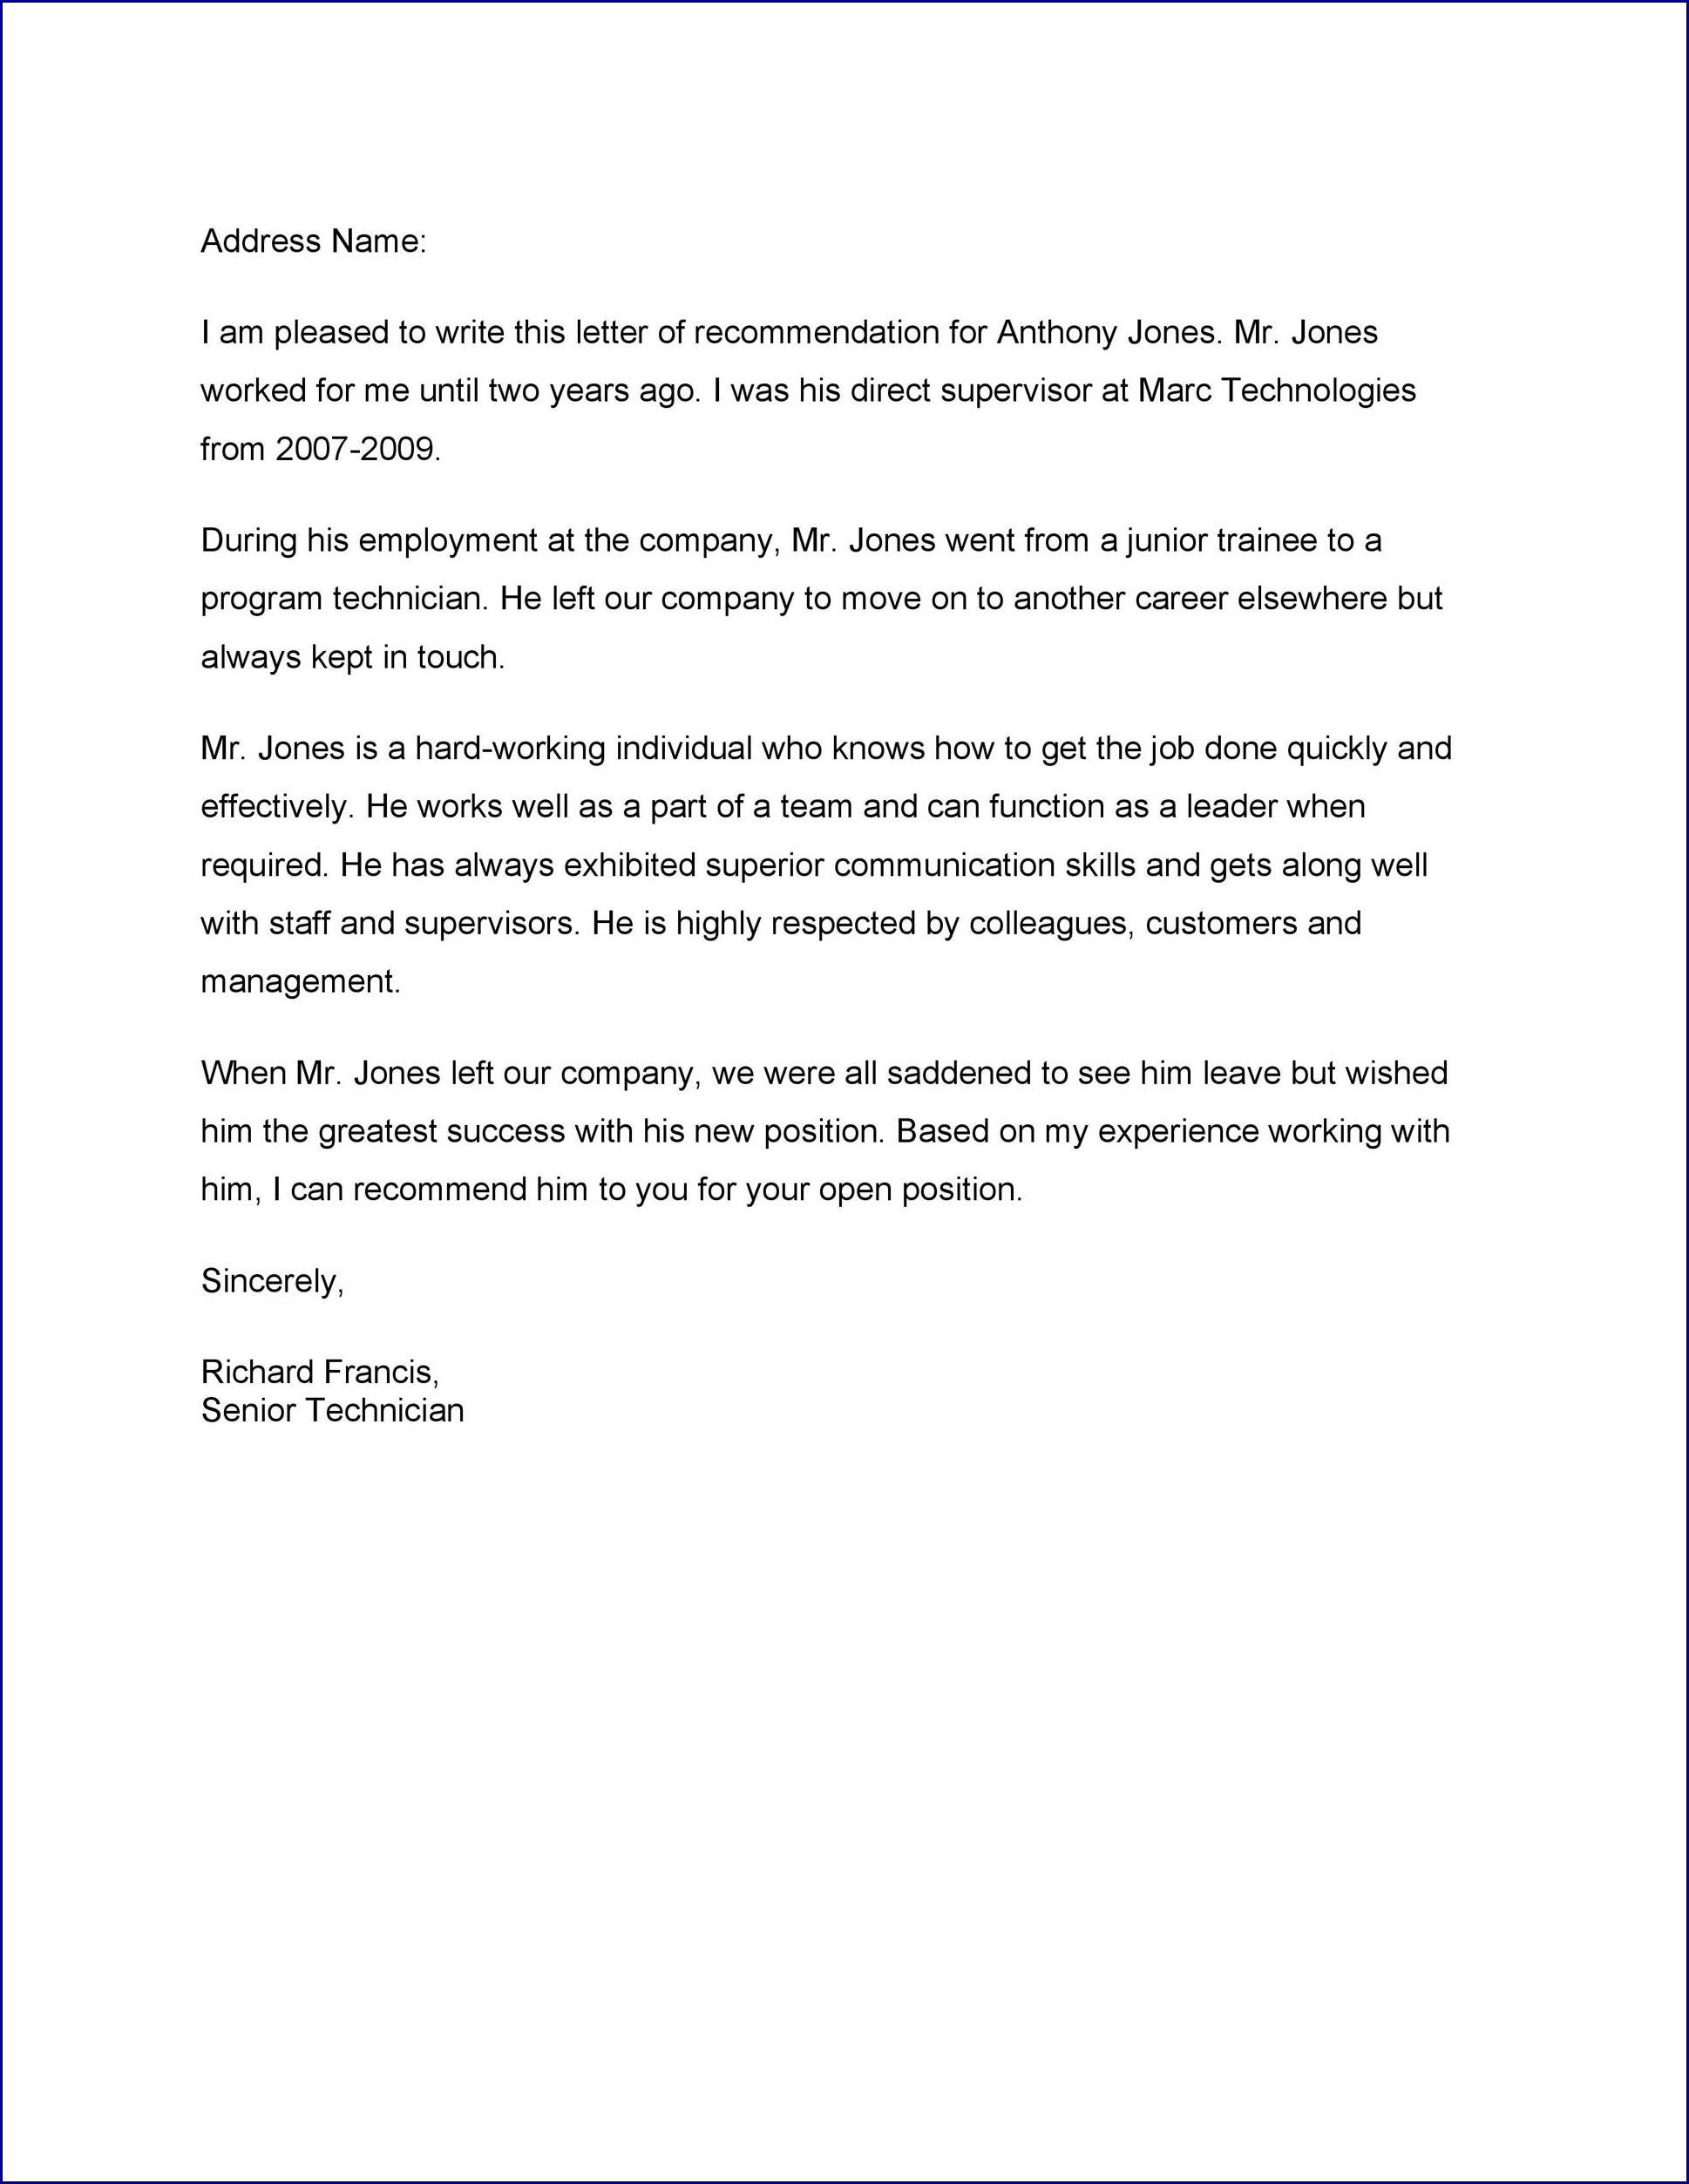 Letter of Recommendation Template for a Job Example